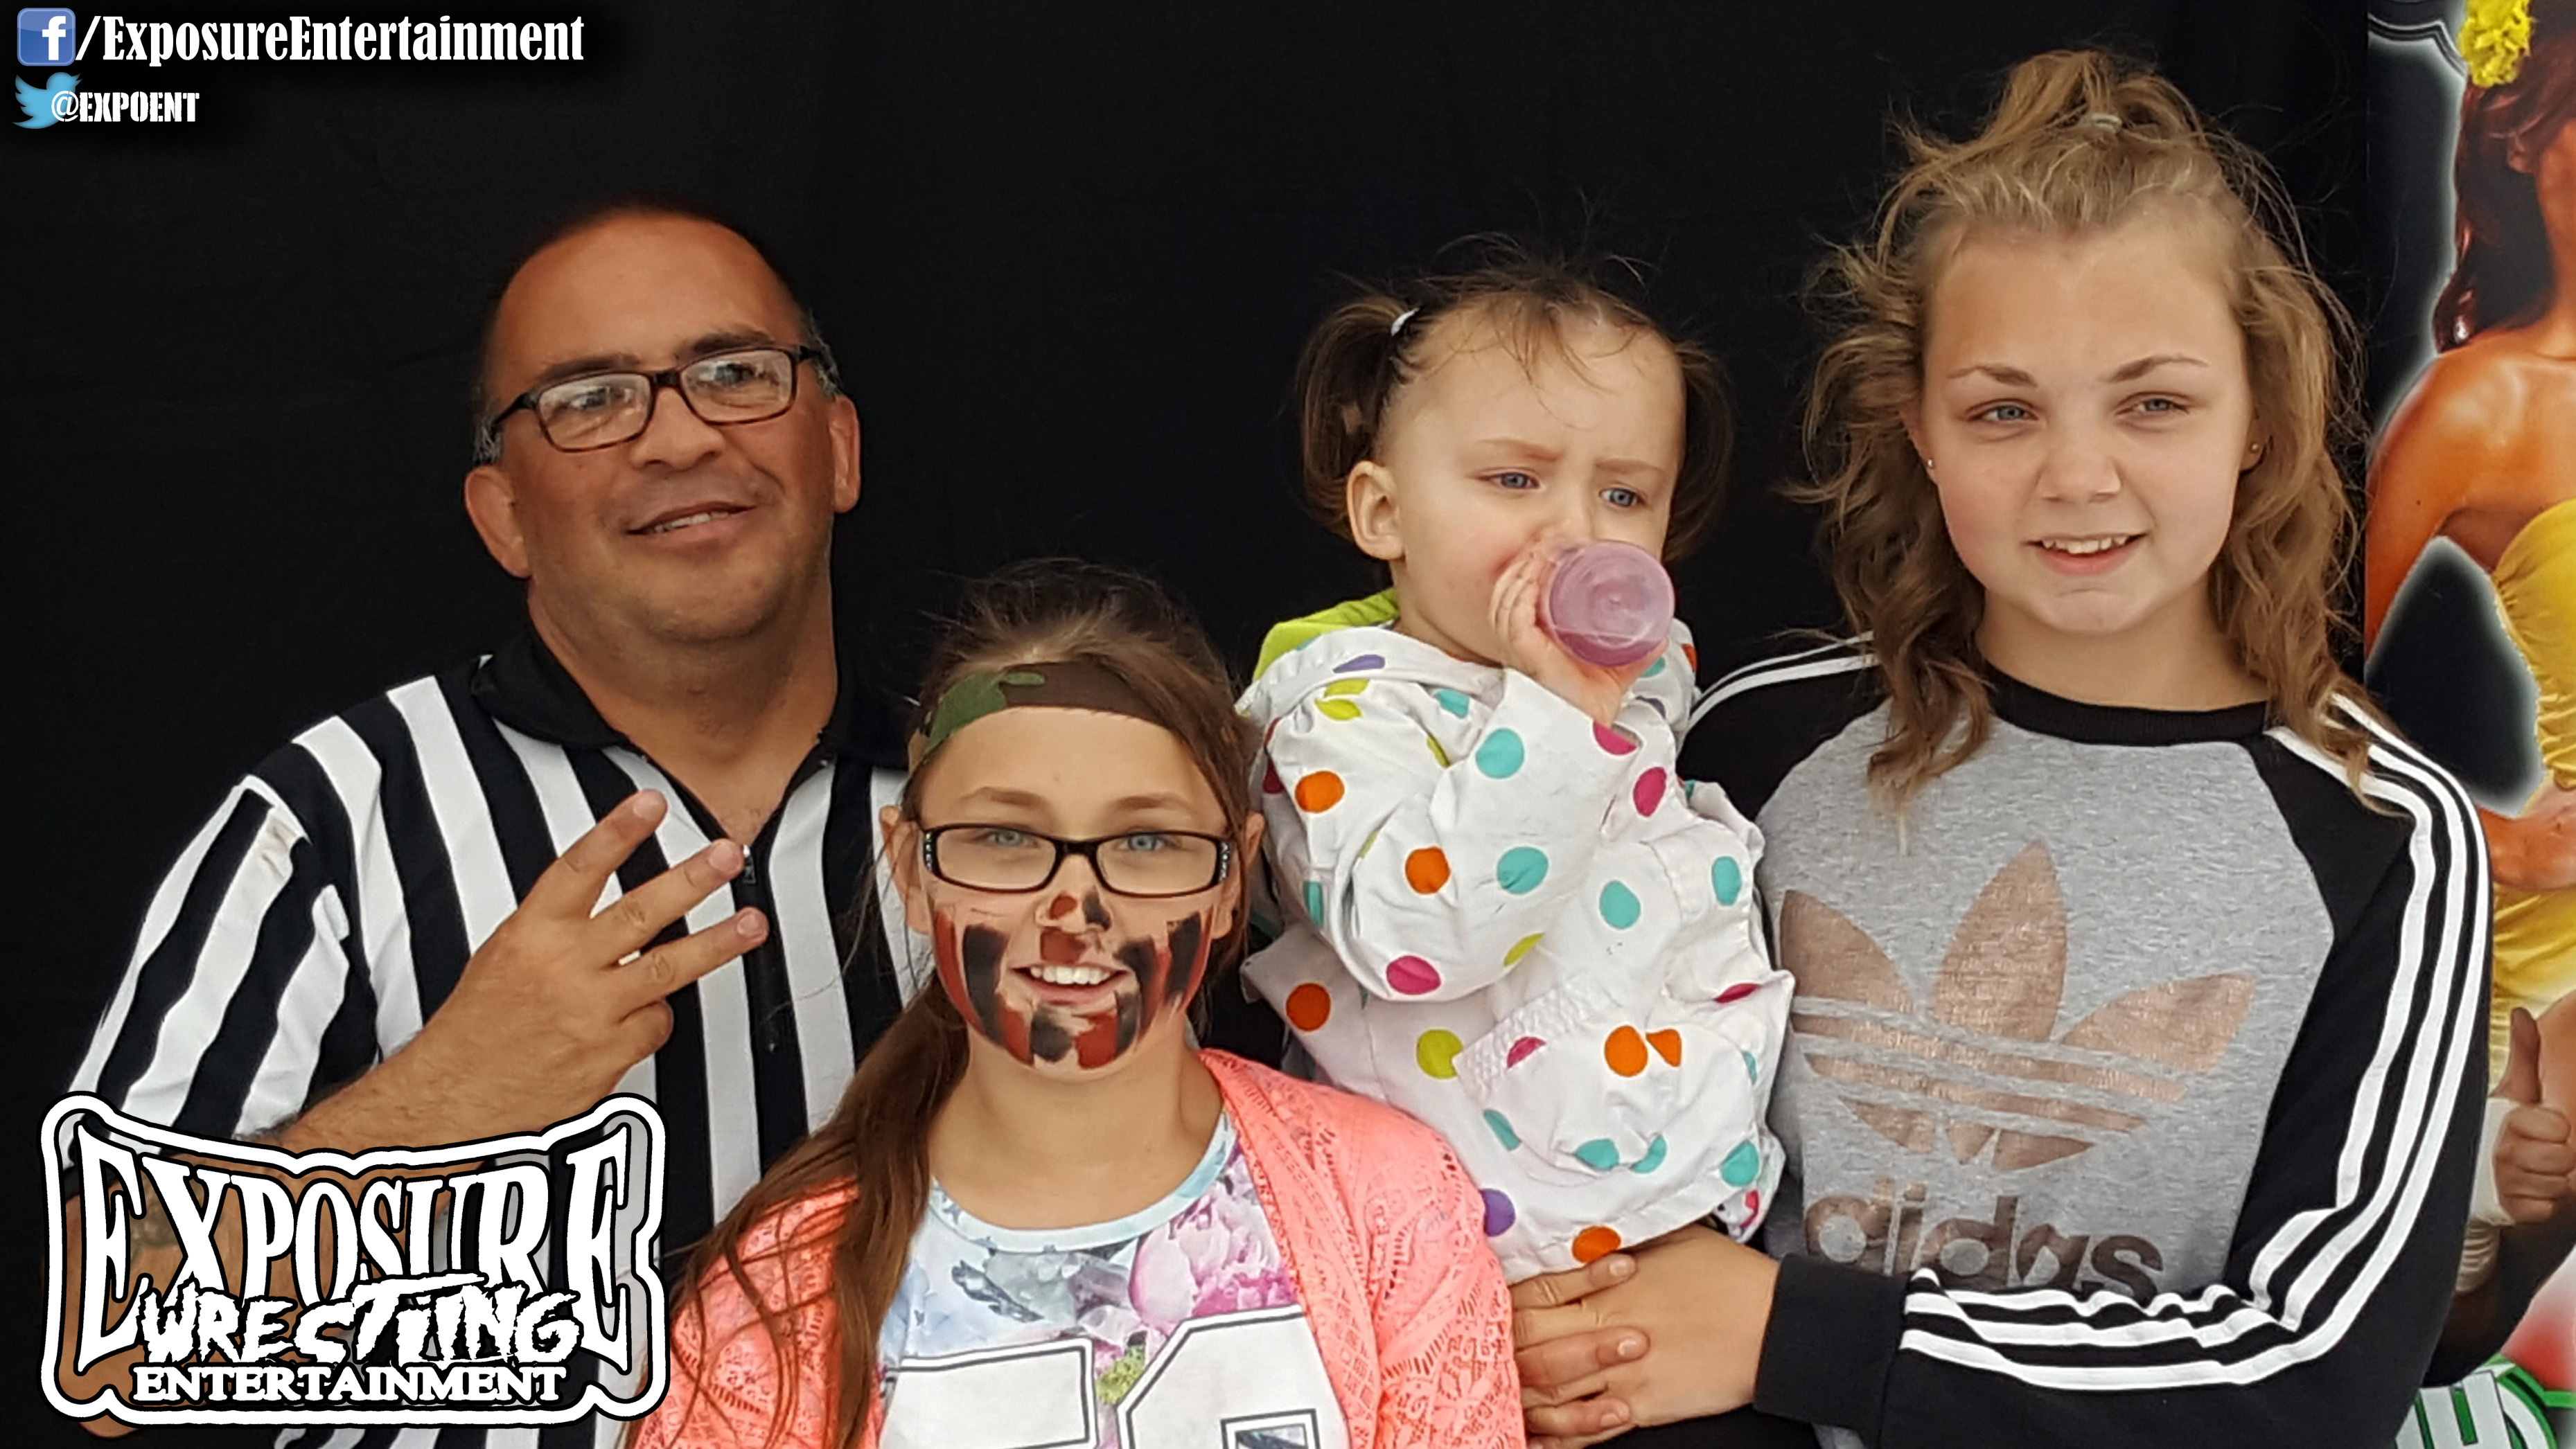 Referee Randy & Fans